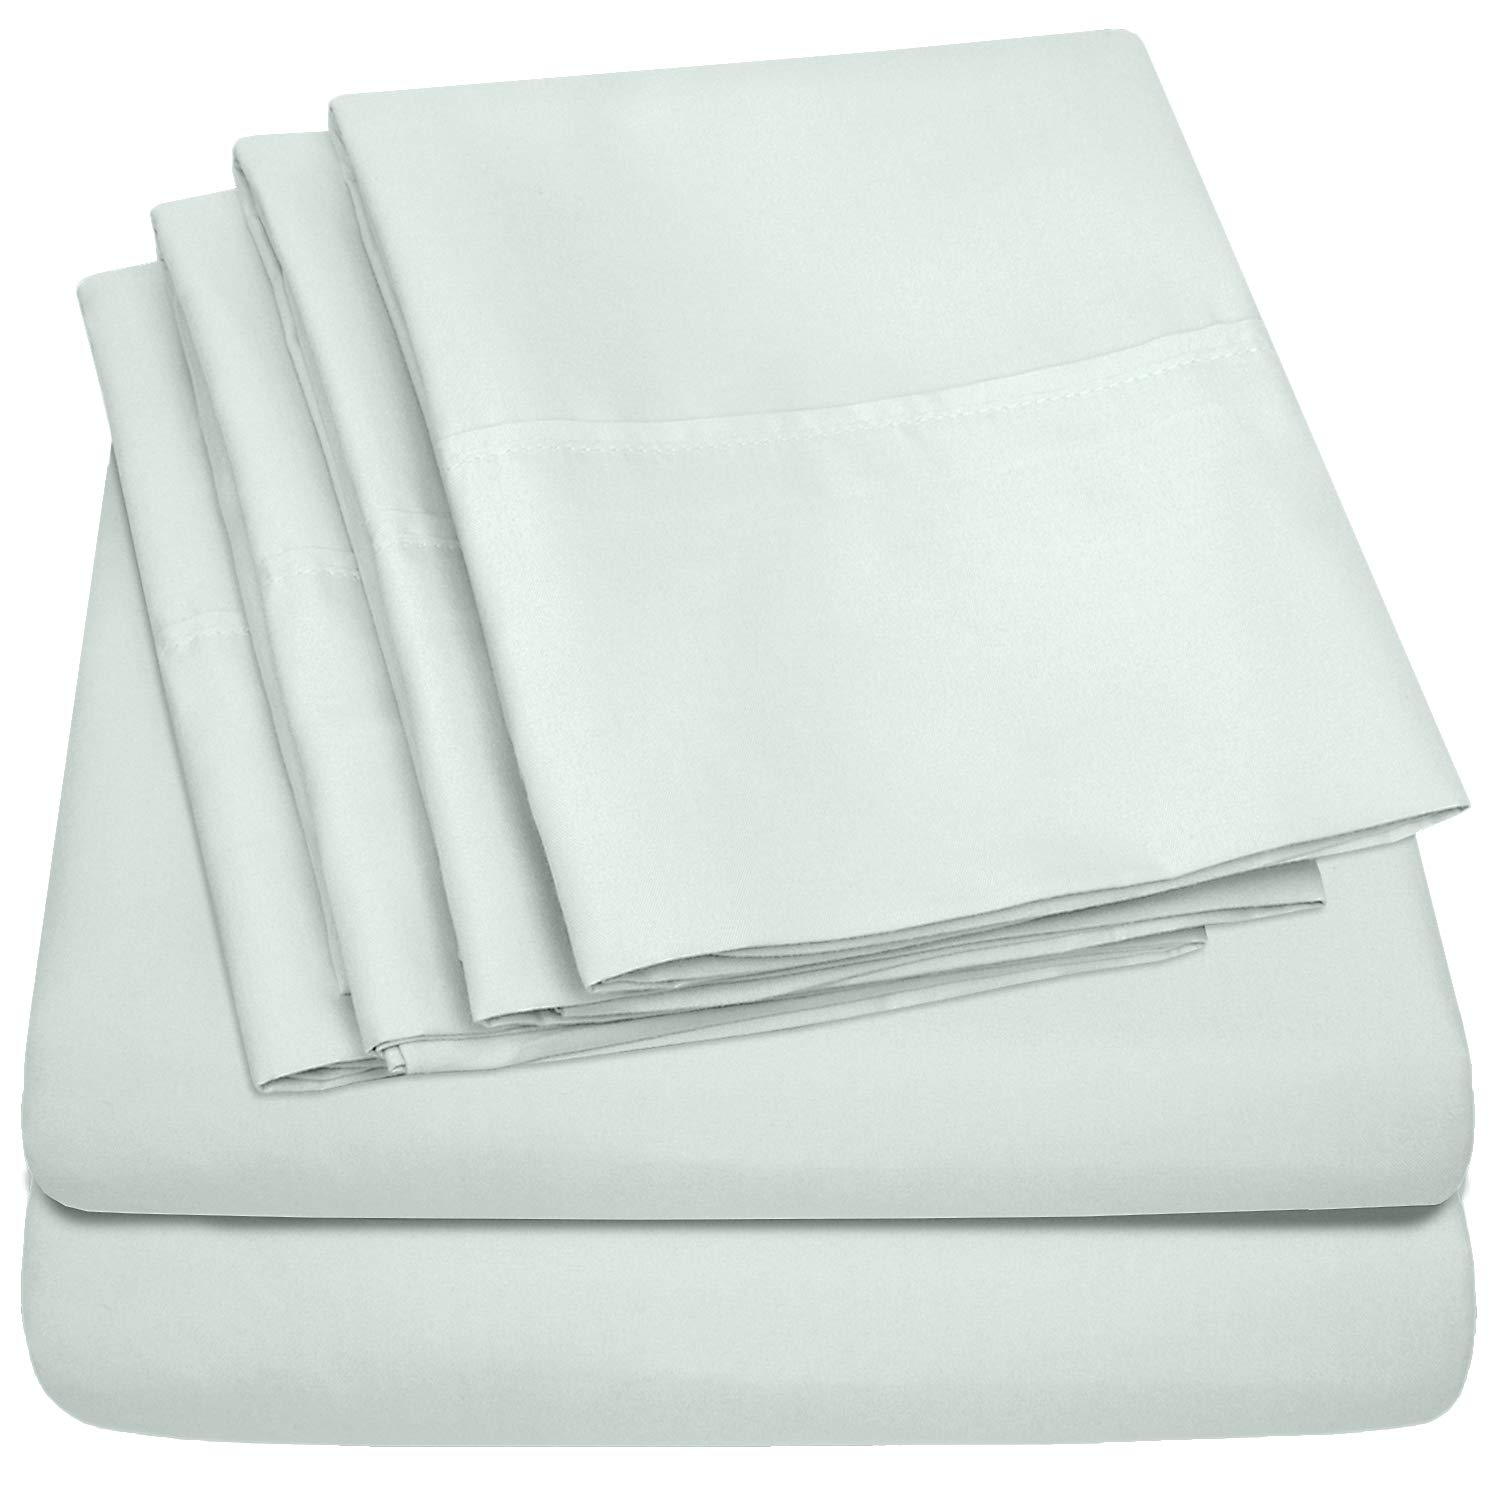 King Size Bed Sheets - 6 Piece 1500 Thread Count Fine Brushed Microfiber Deep Pocket King Sheet Set Bedding - 2 Extra Pillow Cases, Great Value, King, Mint